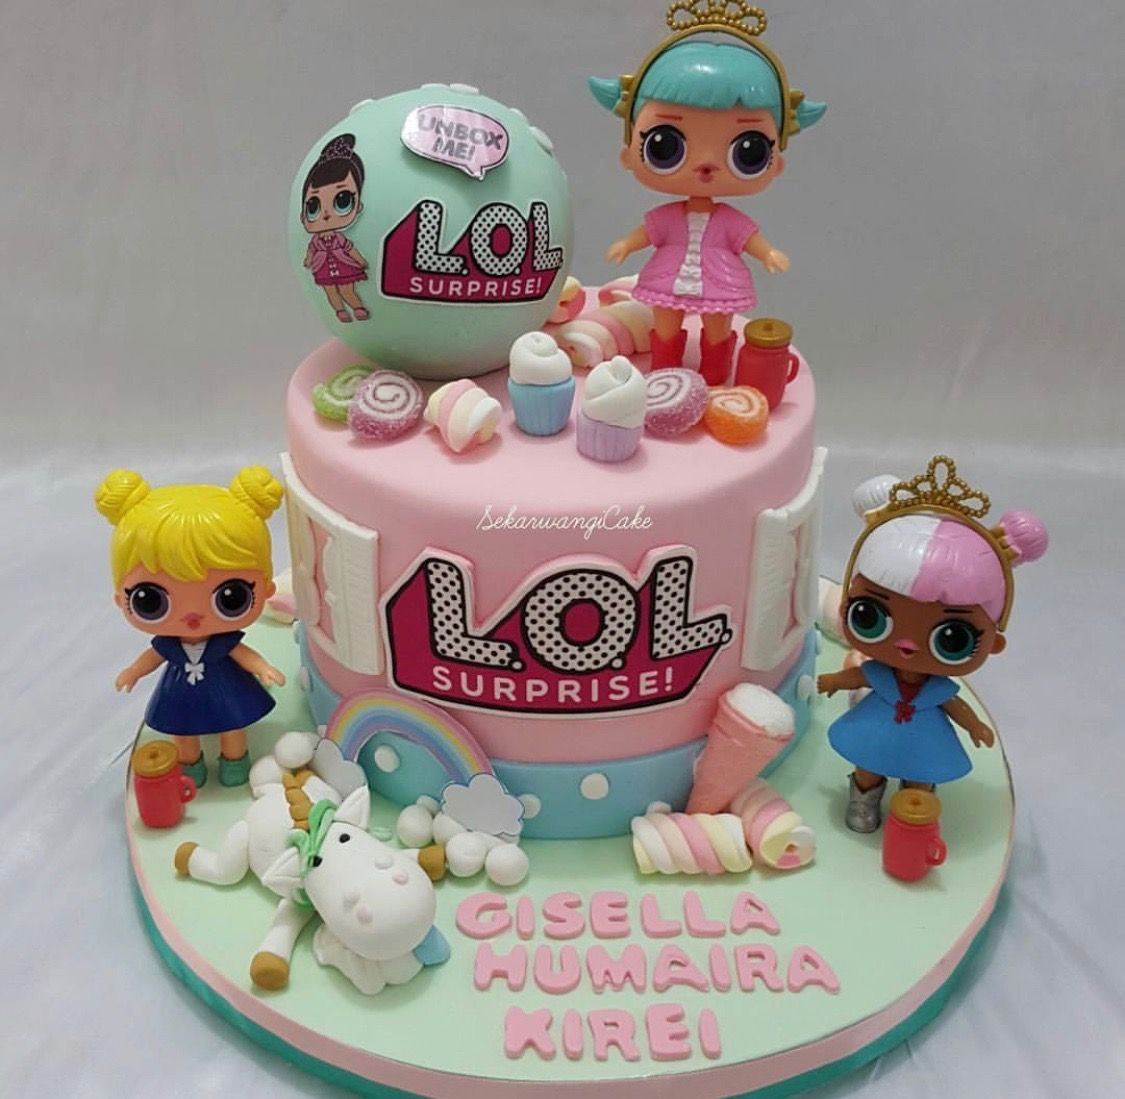 Lol Surprise Dolls Birthday Cake Doll Birthday Cake Funny Birthday Cakes Lol Doll Cake